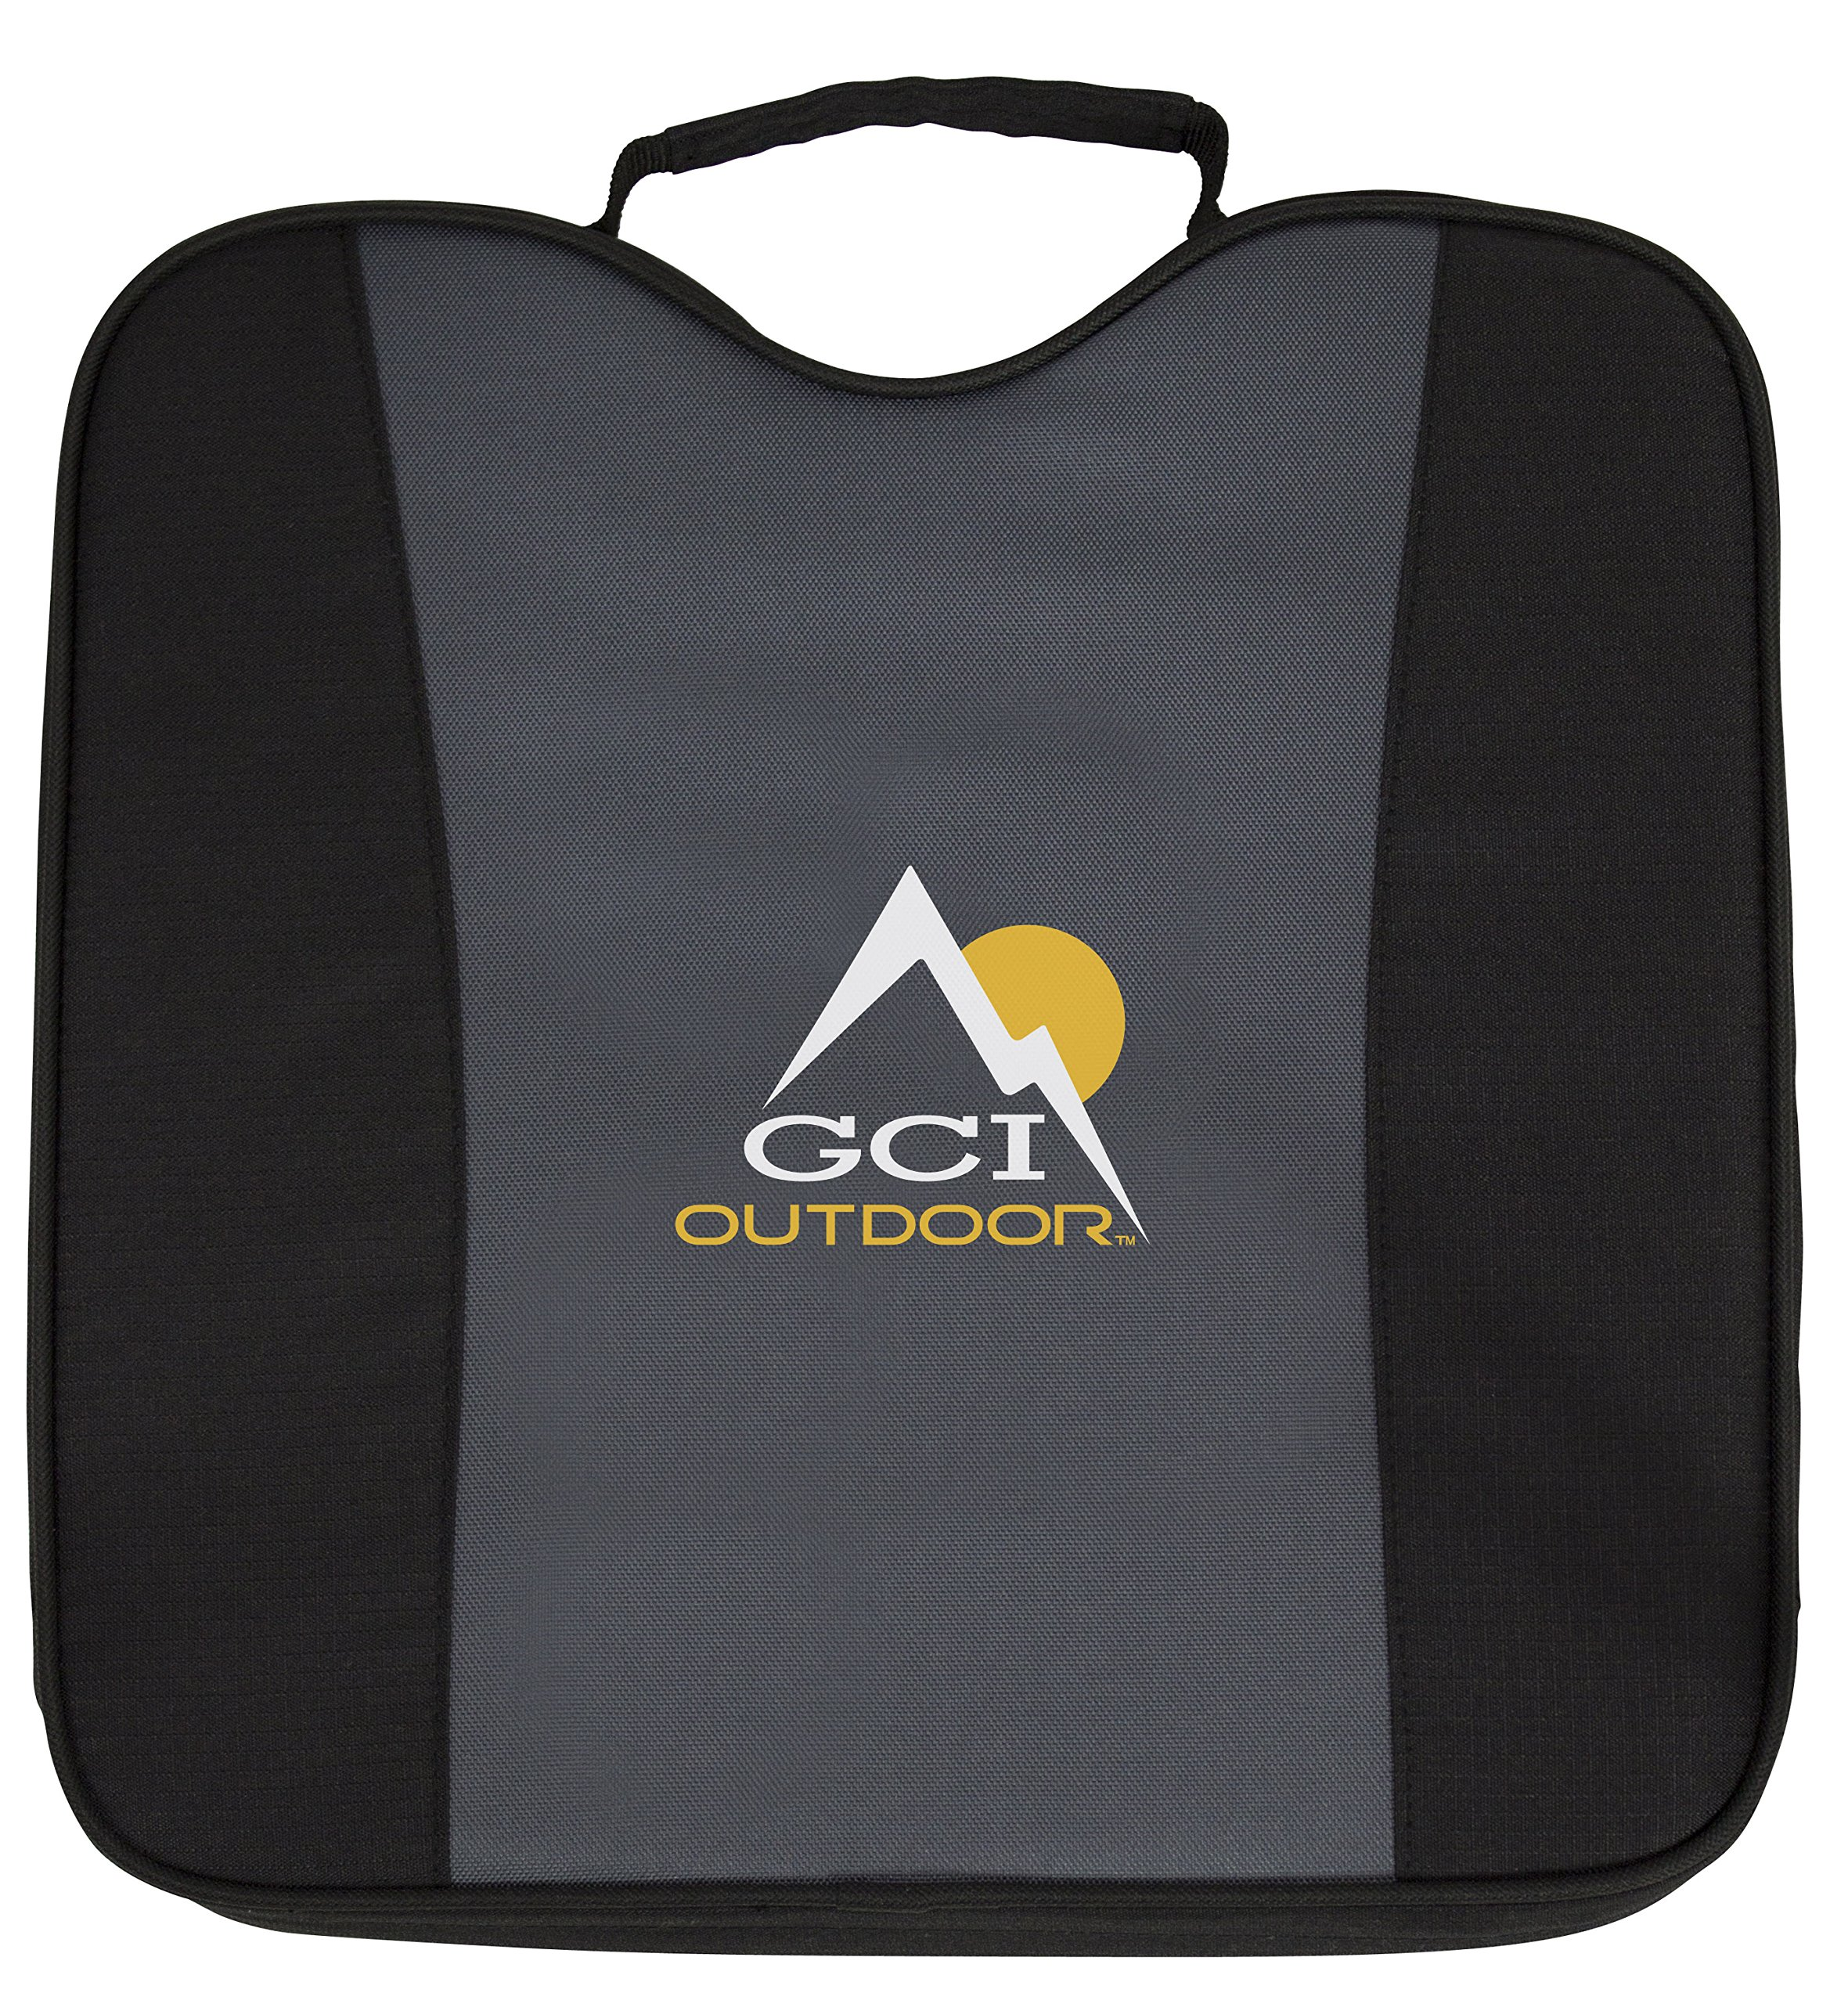 GCI Outdoor Comfort 2.5-Inch Portable Bleacher Seat Cushion